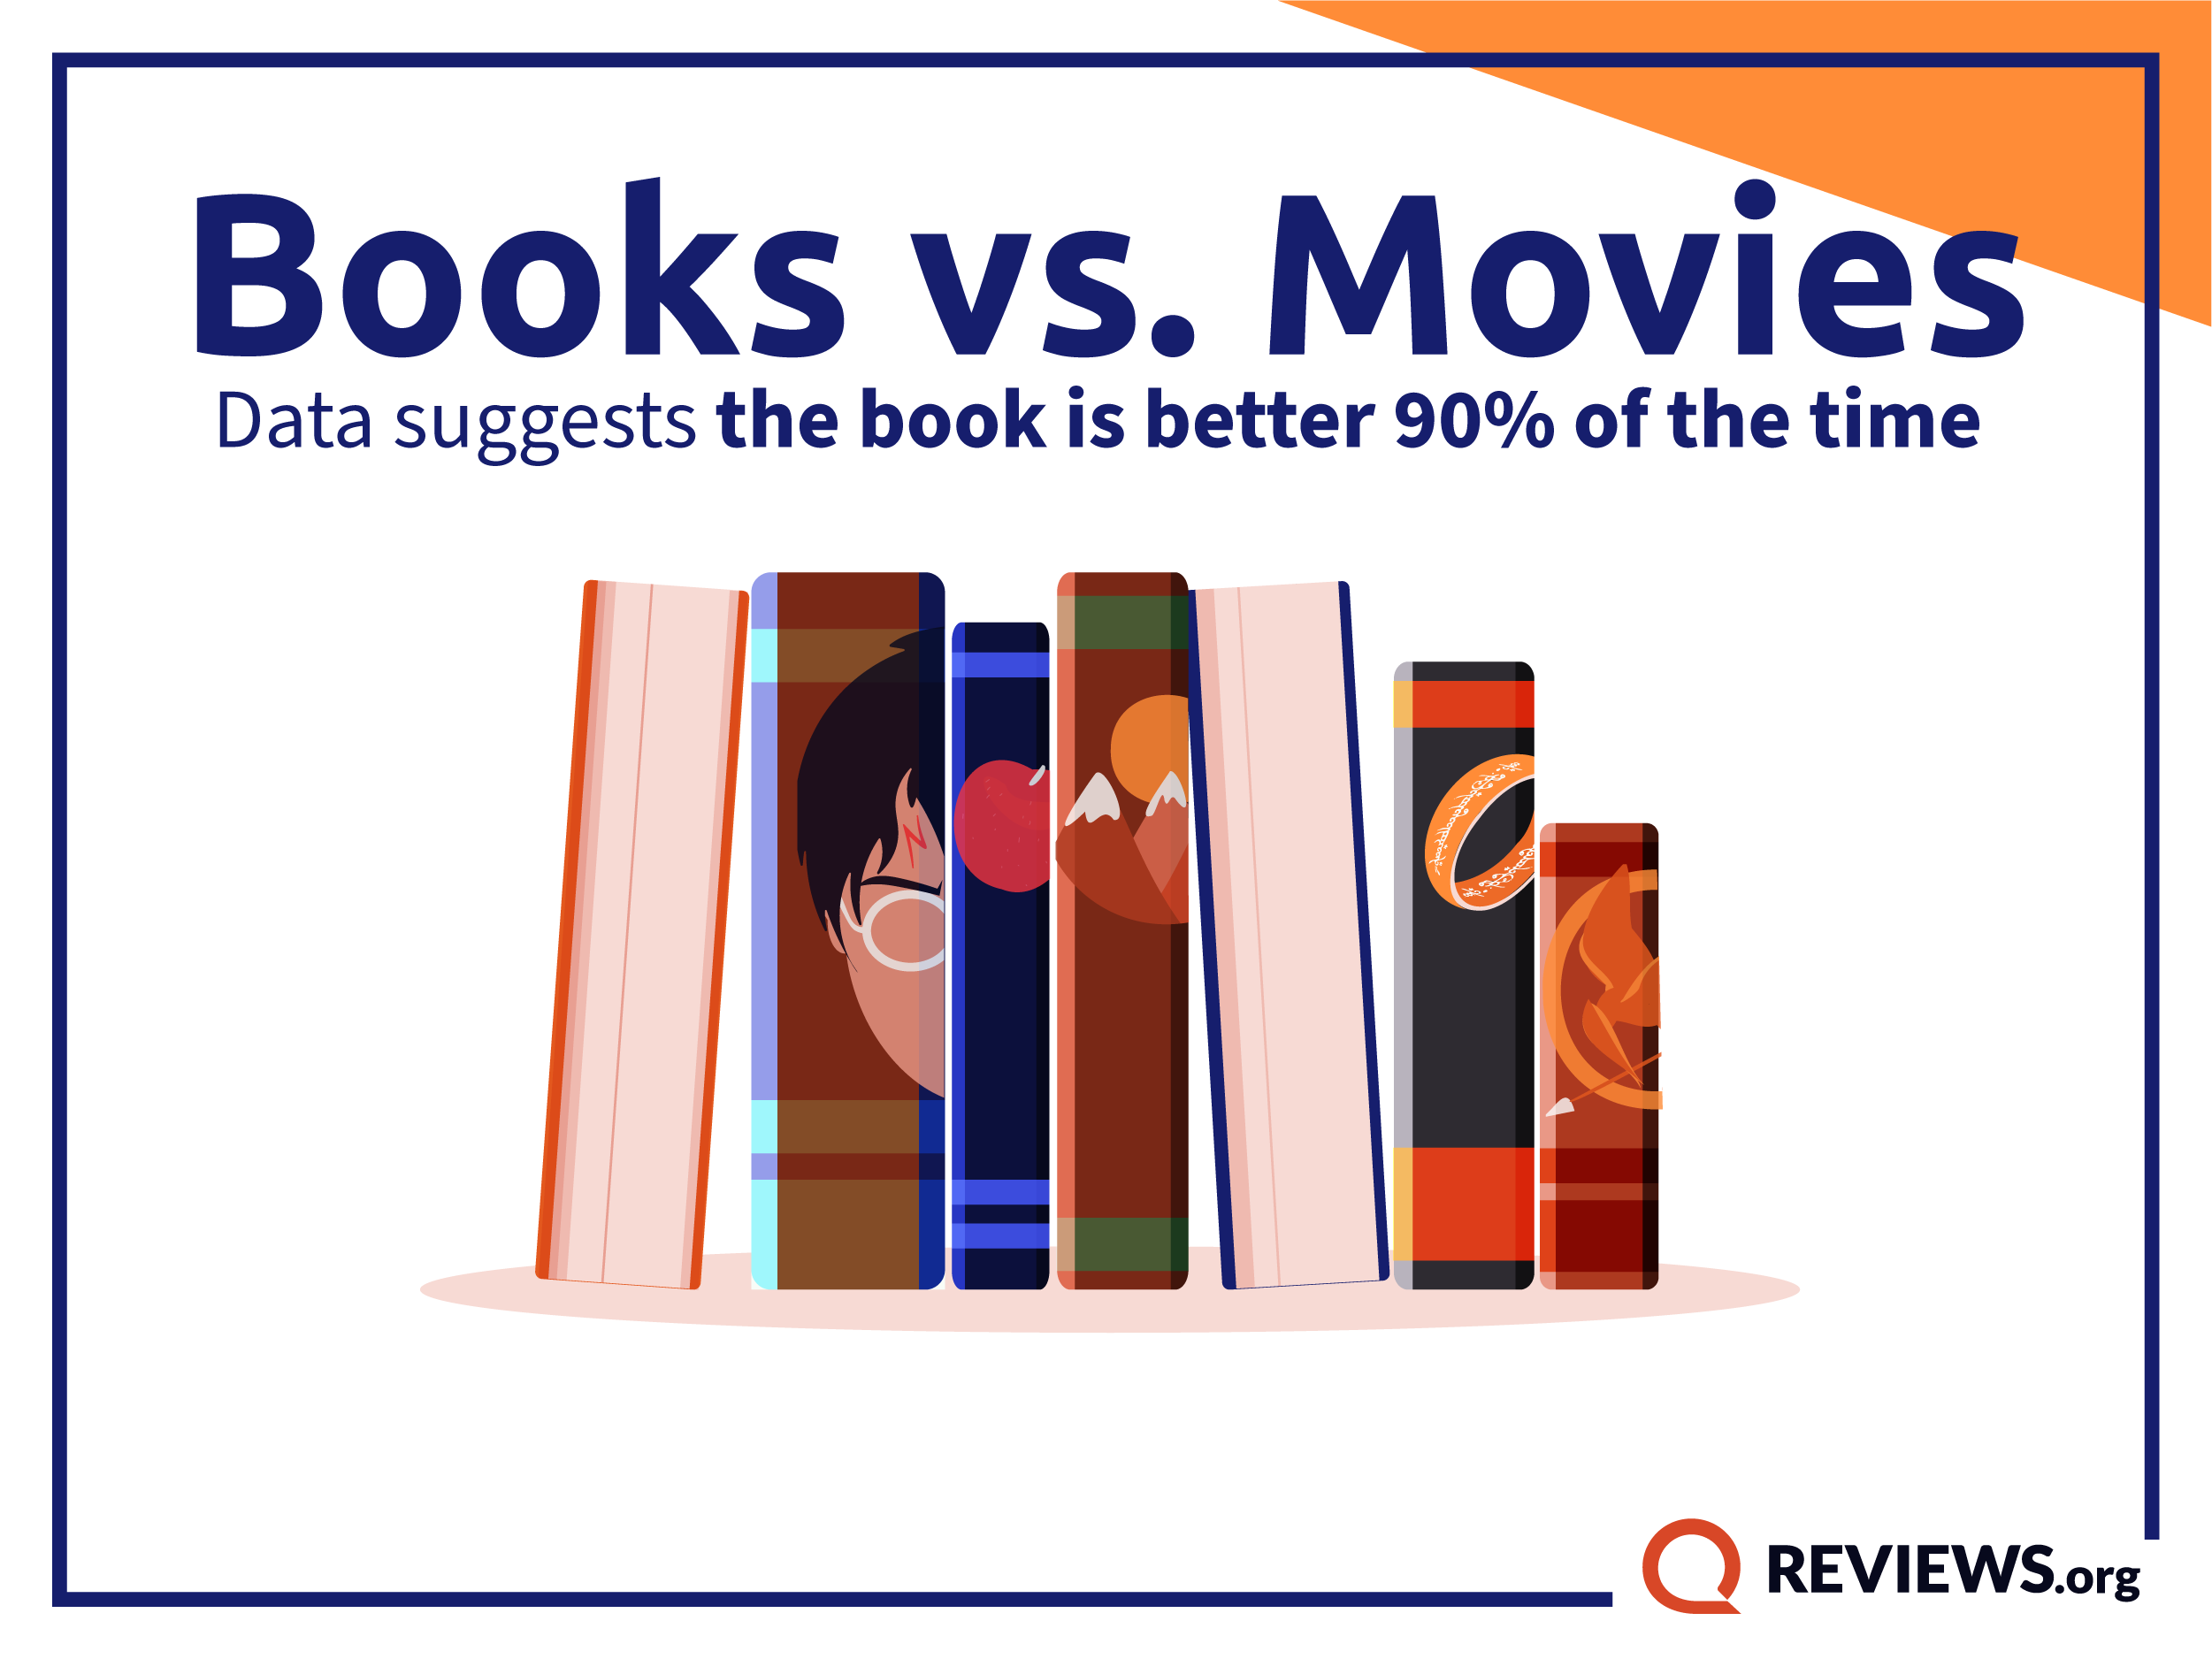 Data Suggests Books are Better Than Movies 90% of the Time